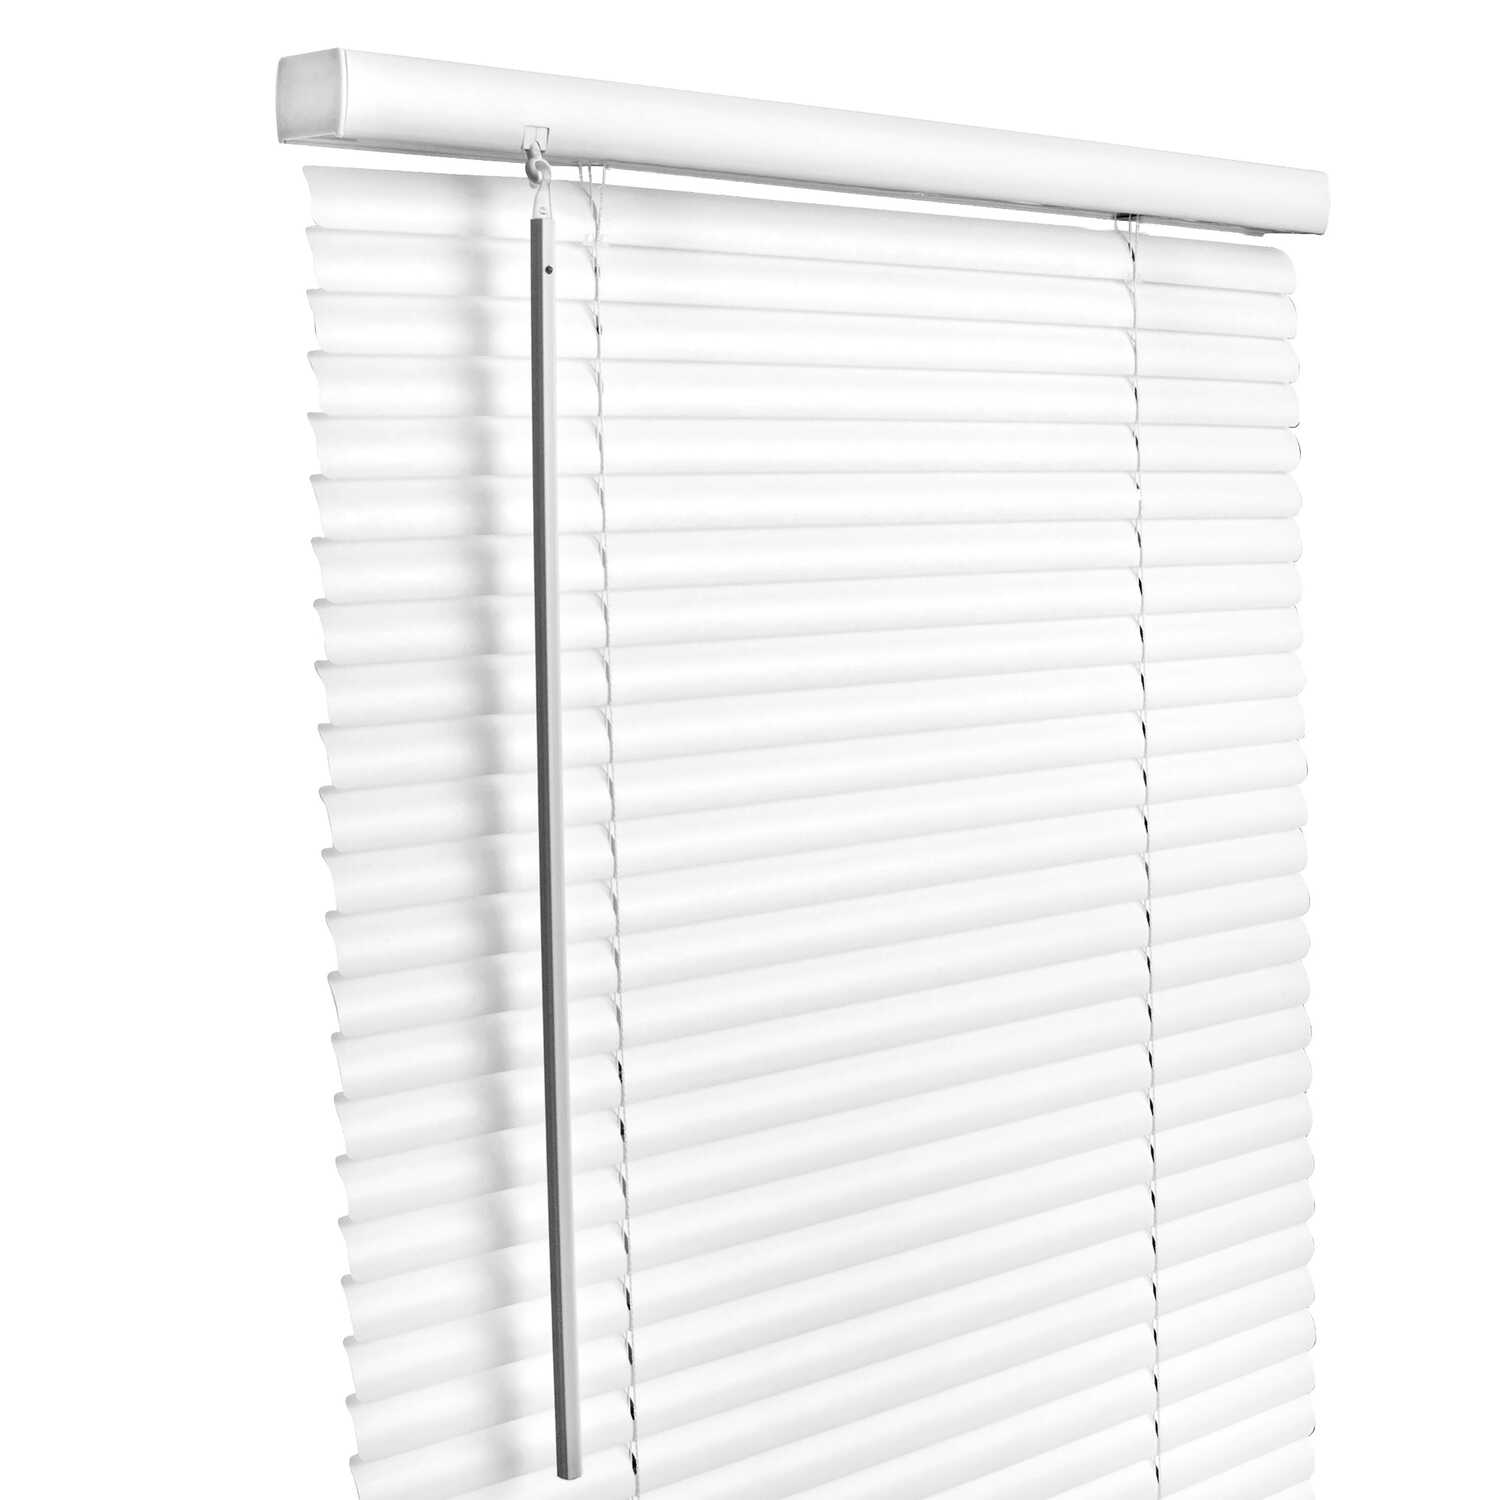 Living Accents  Vinyl  1 in. Mini-Blinds  39 in. W x 64 in. H White  Cordless